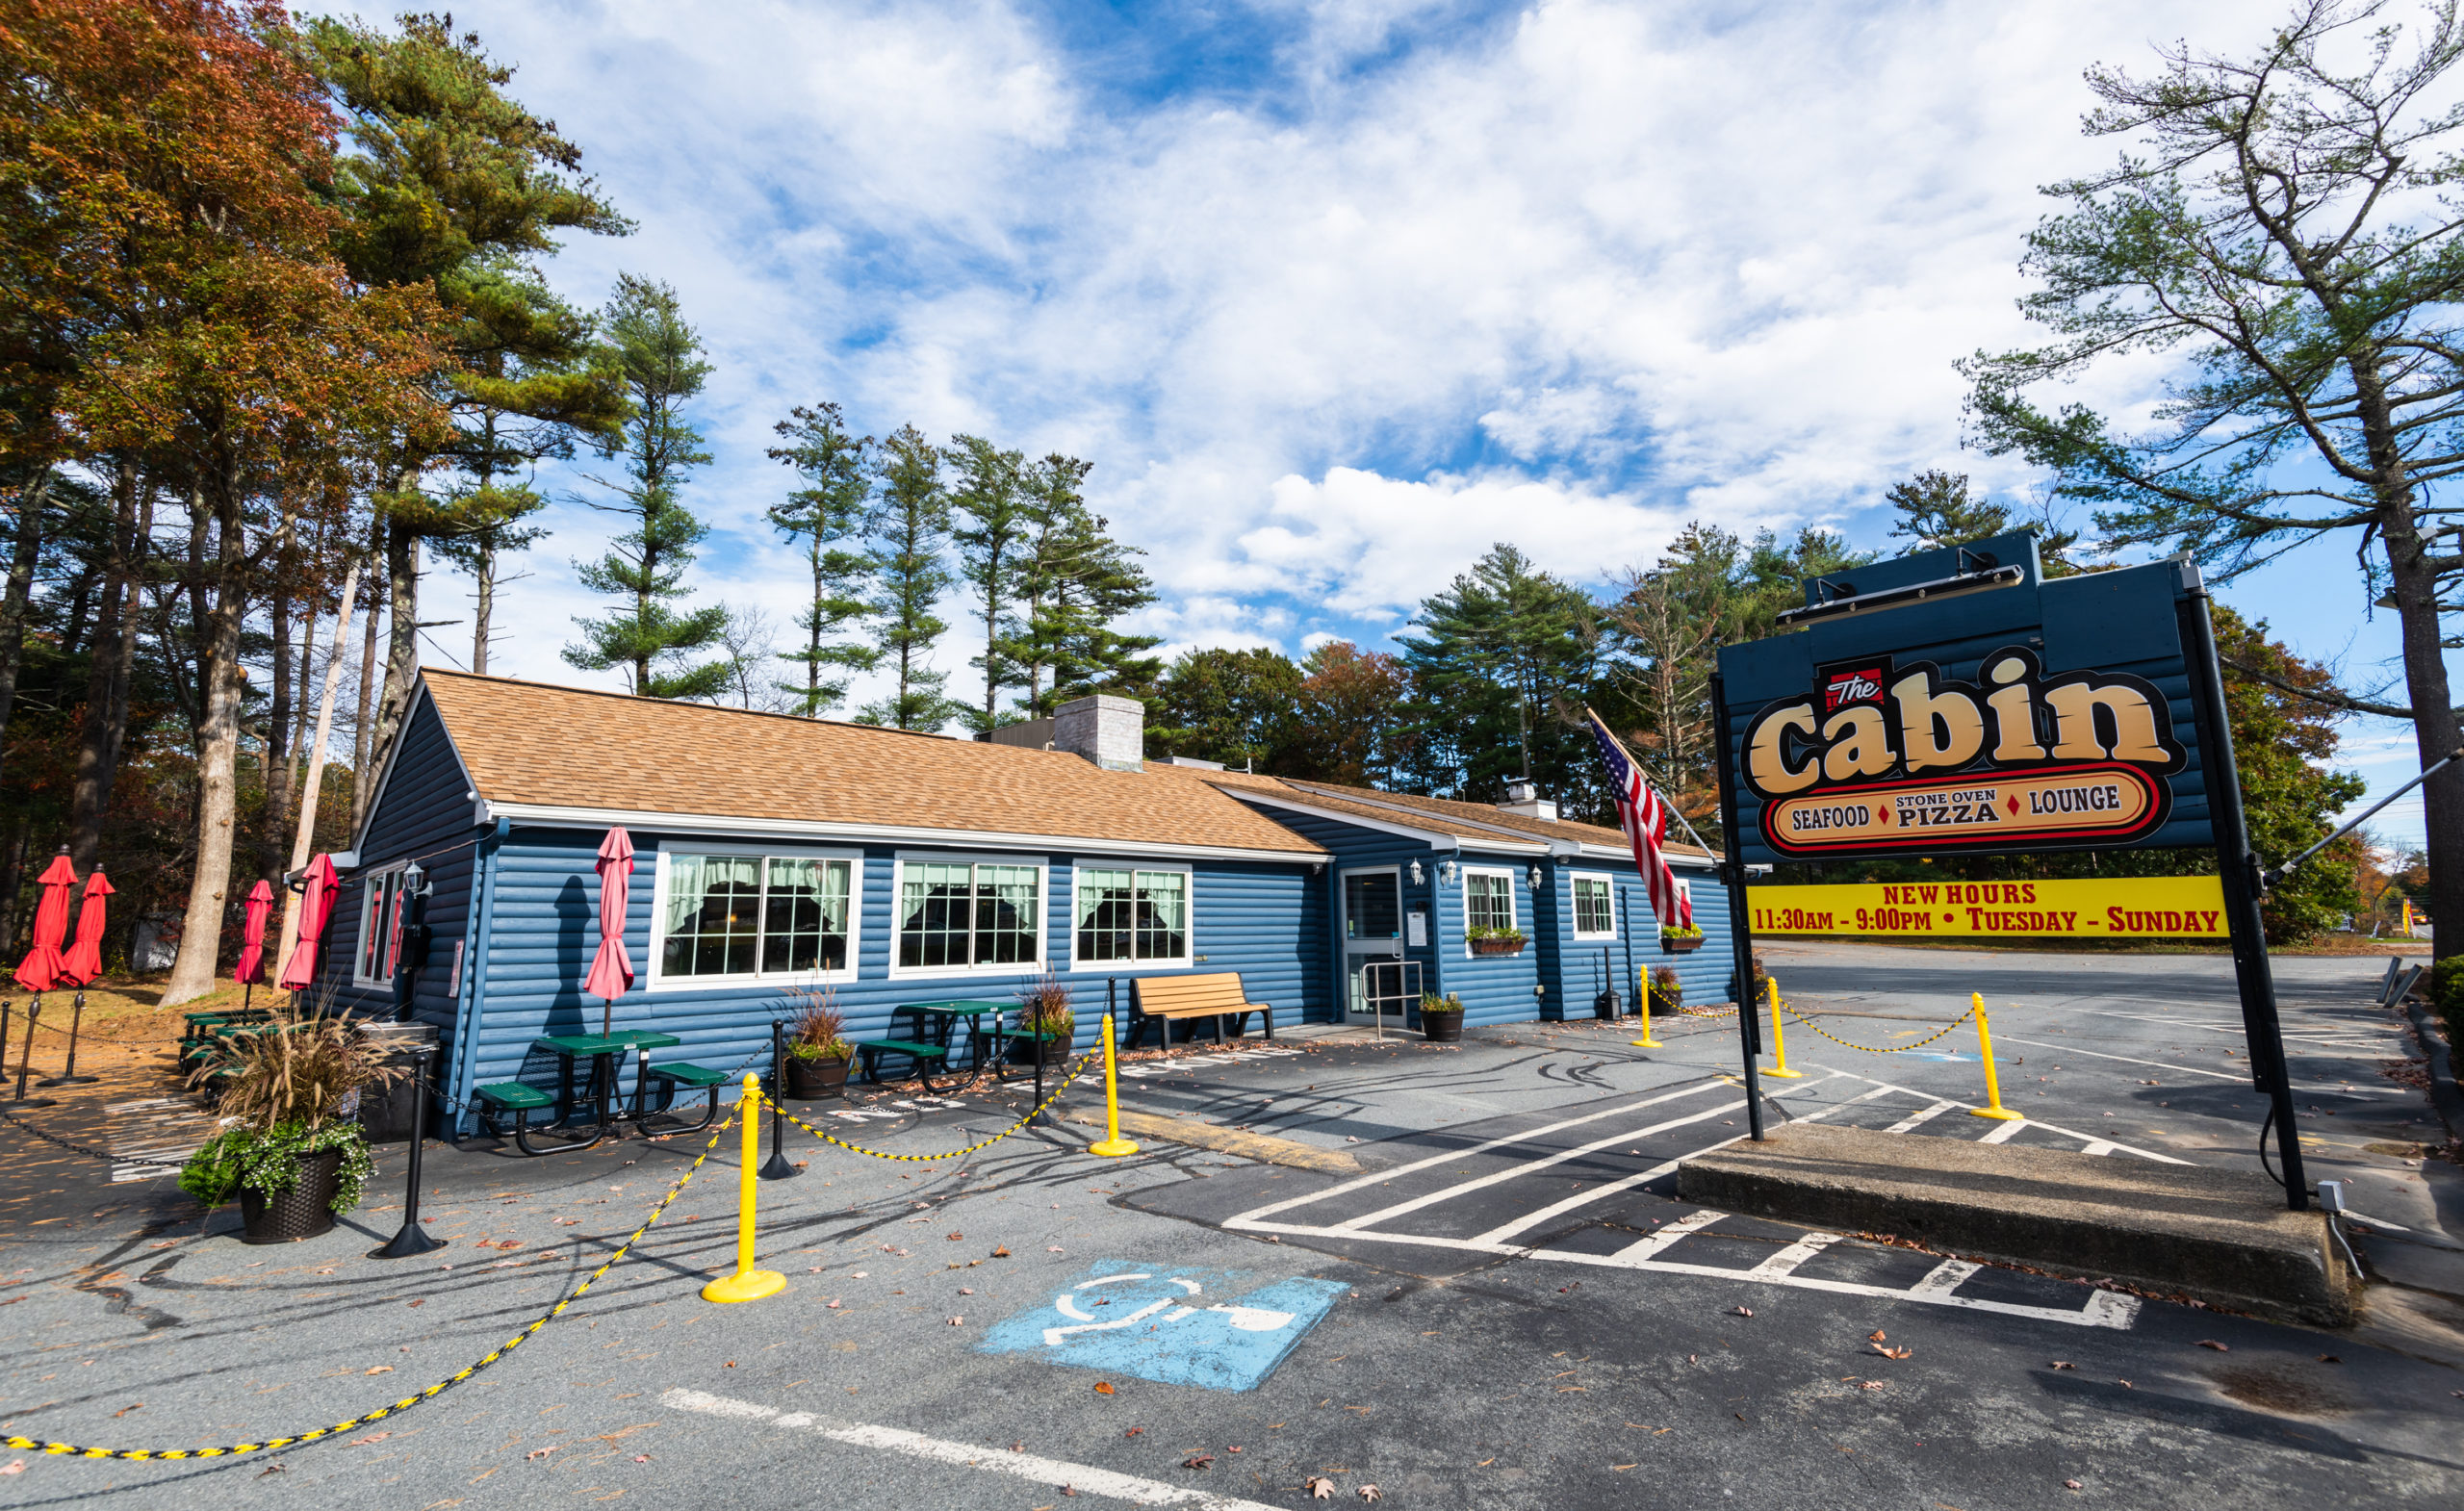 The Cabin Restaurant Middleboro, MA